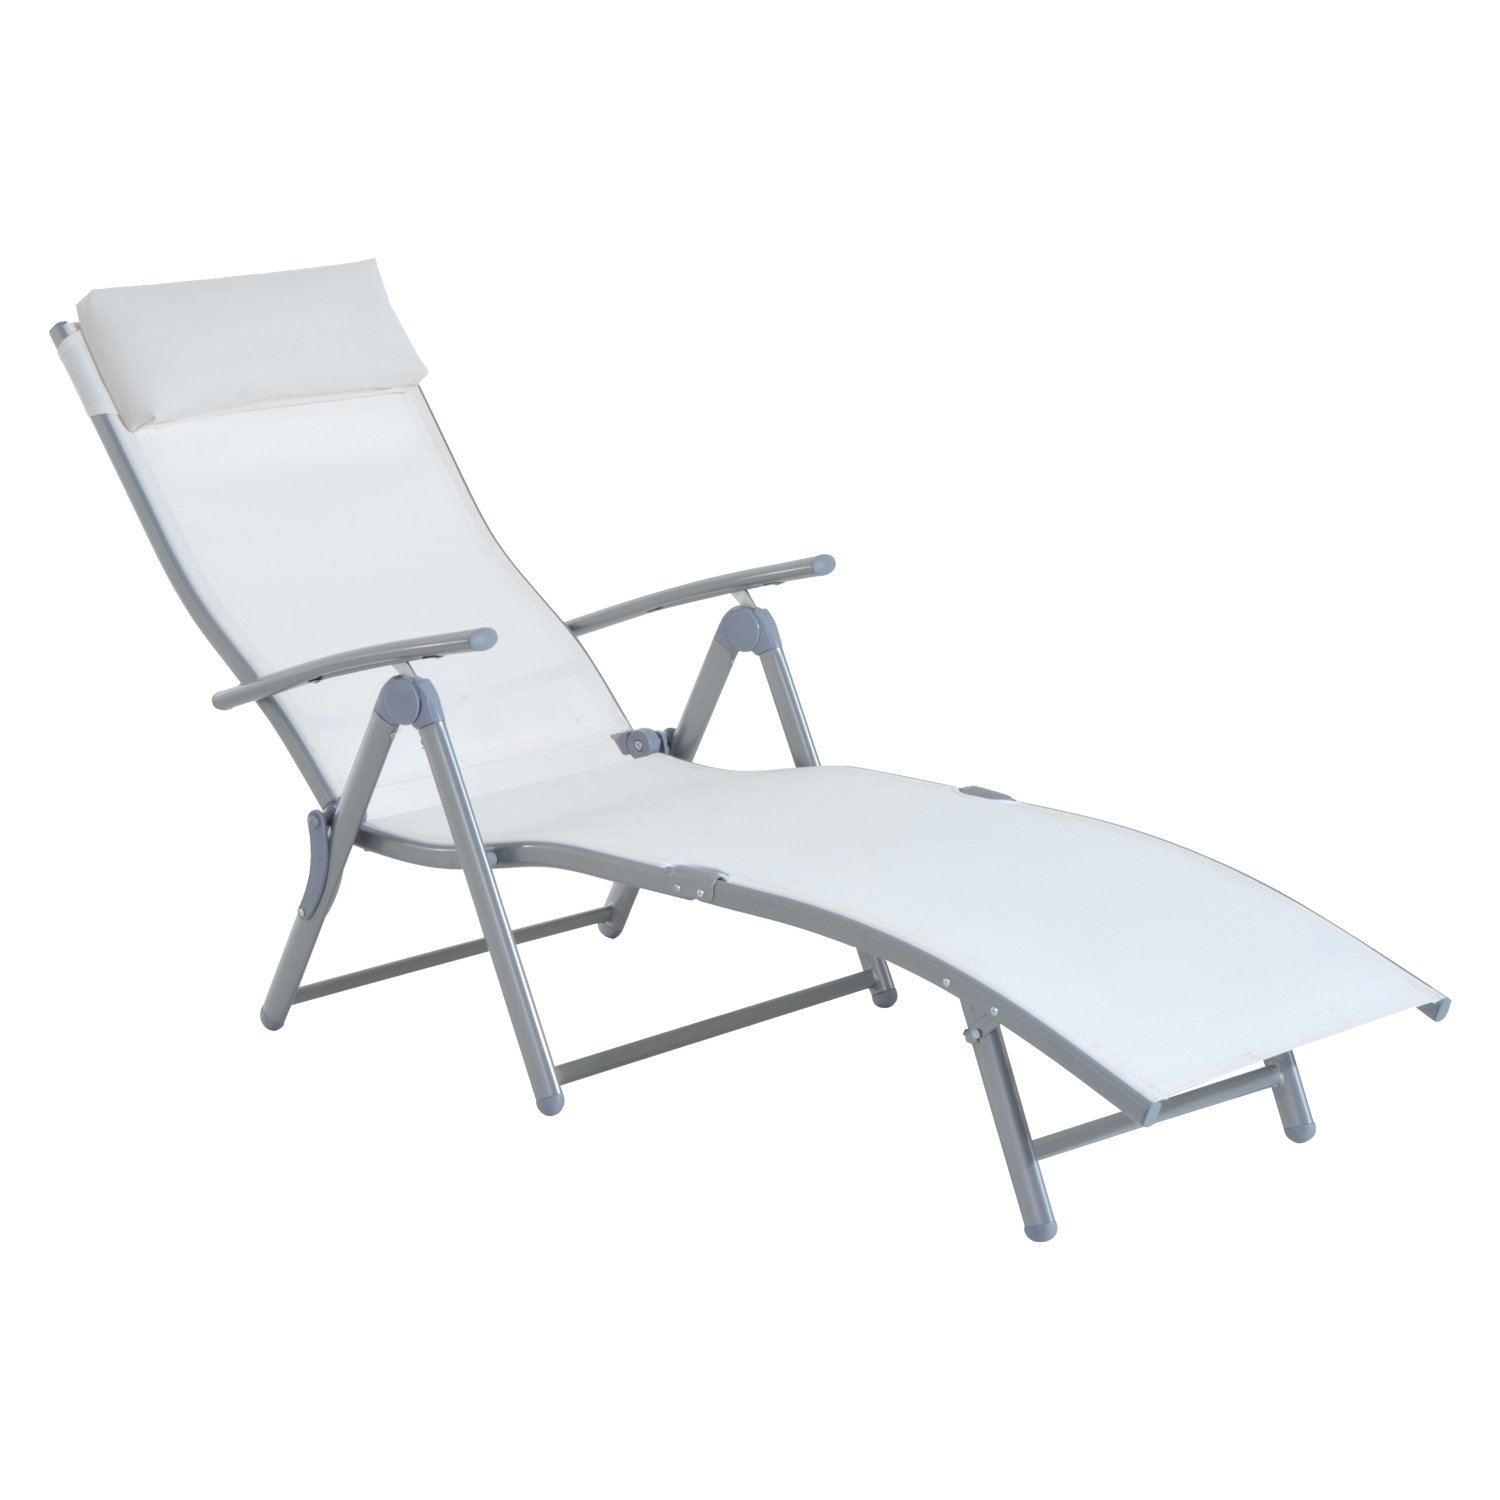 outsunny patio reclining chaise lounge chair with cushion cream white